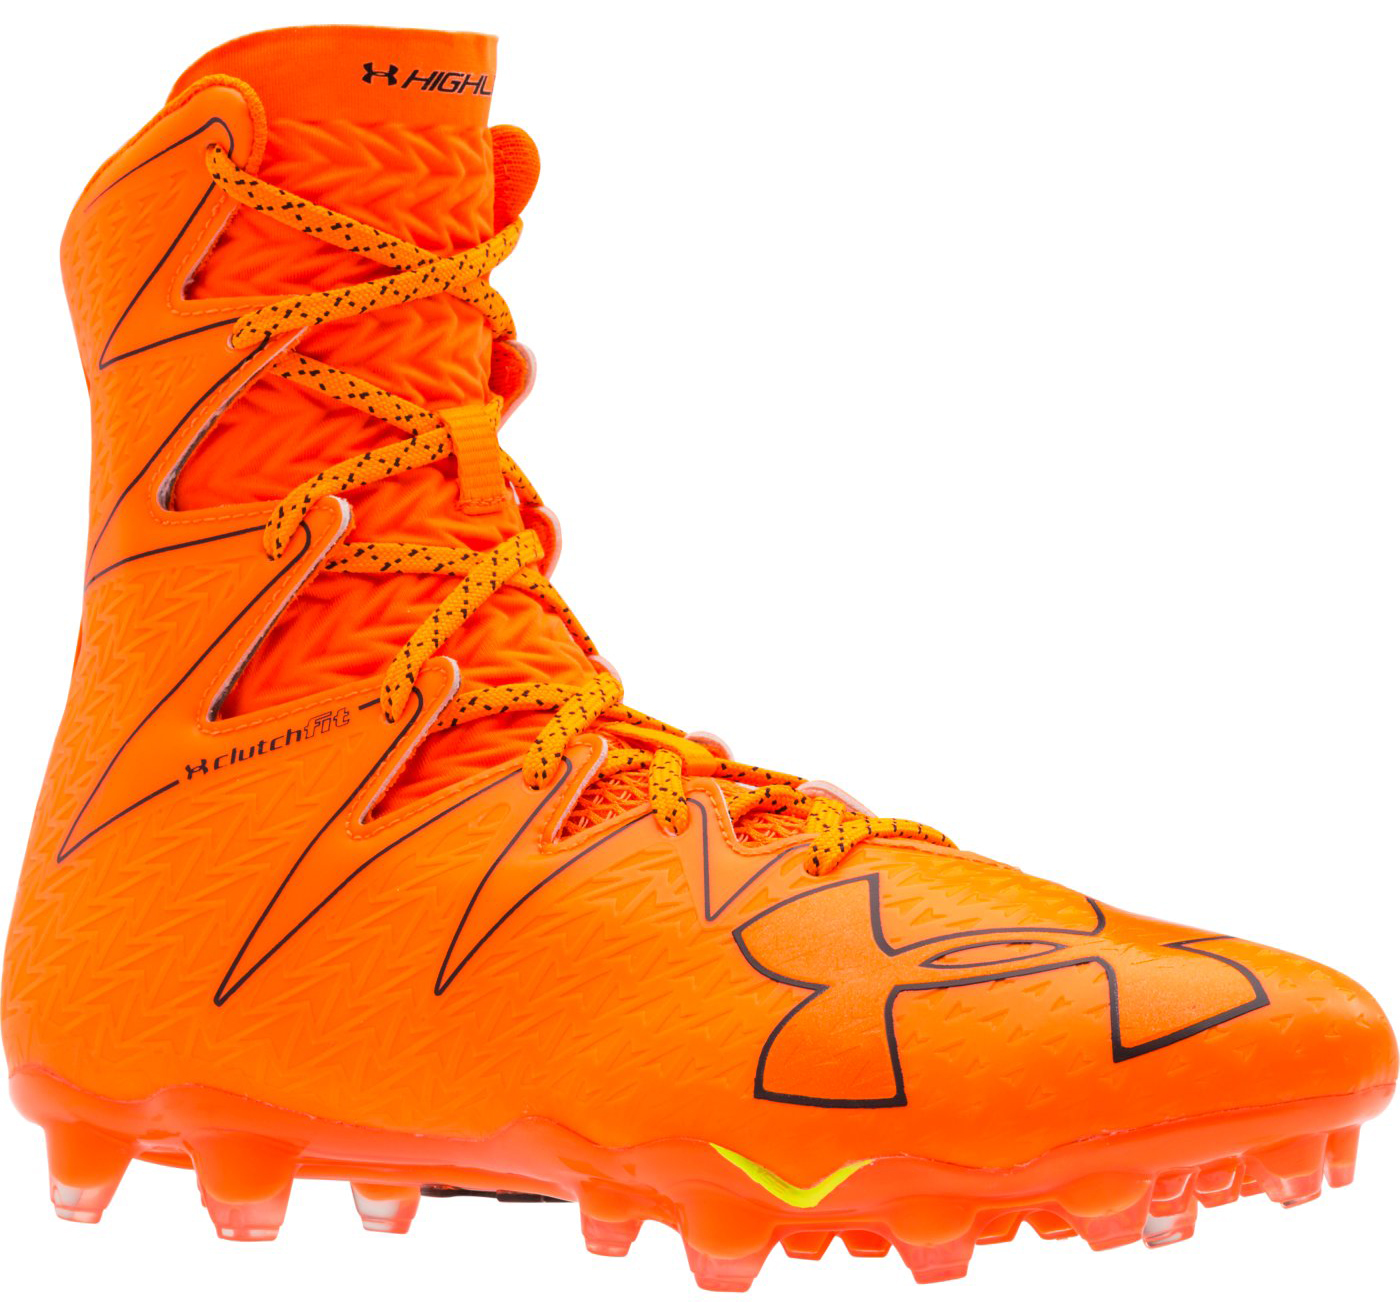 under armour highlight football cleats for sale cheap   OFF74% The Largest  Catalog Discounts 7aa9472e7516